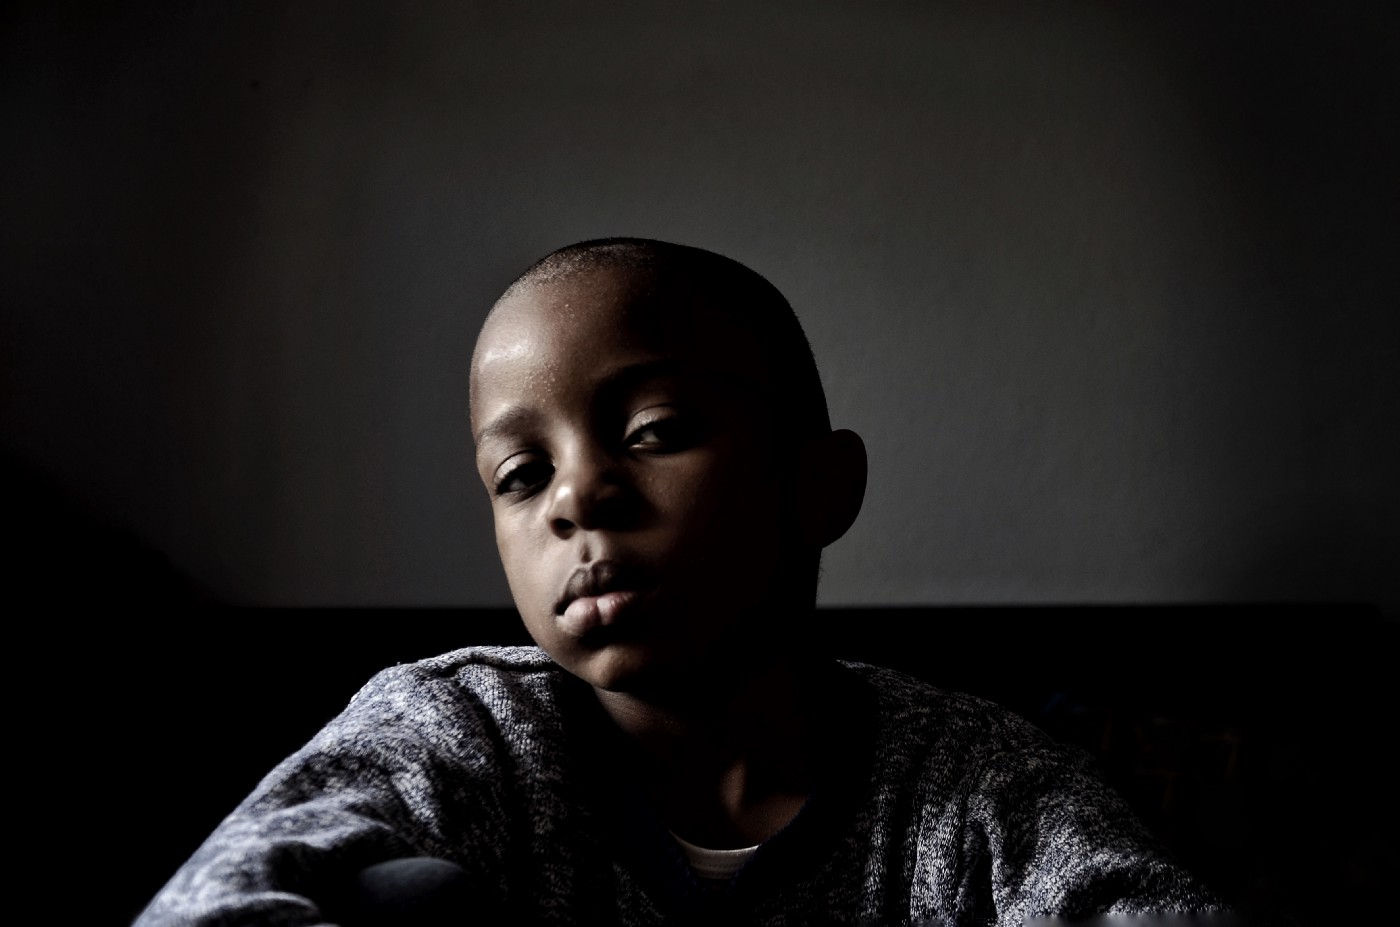 Shadowy portrait of a Black child with shaved hair.